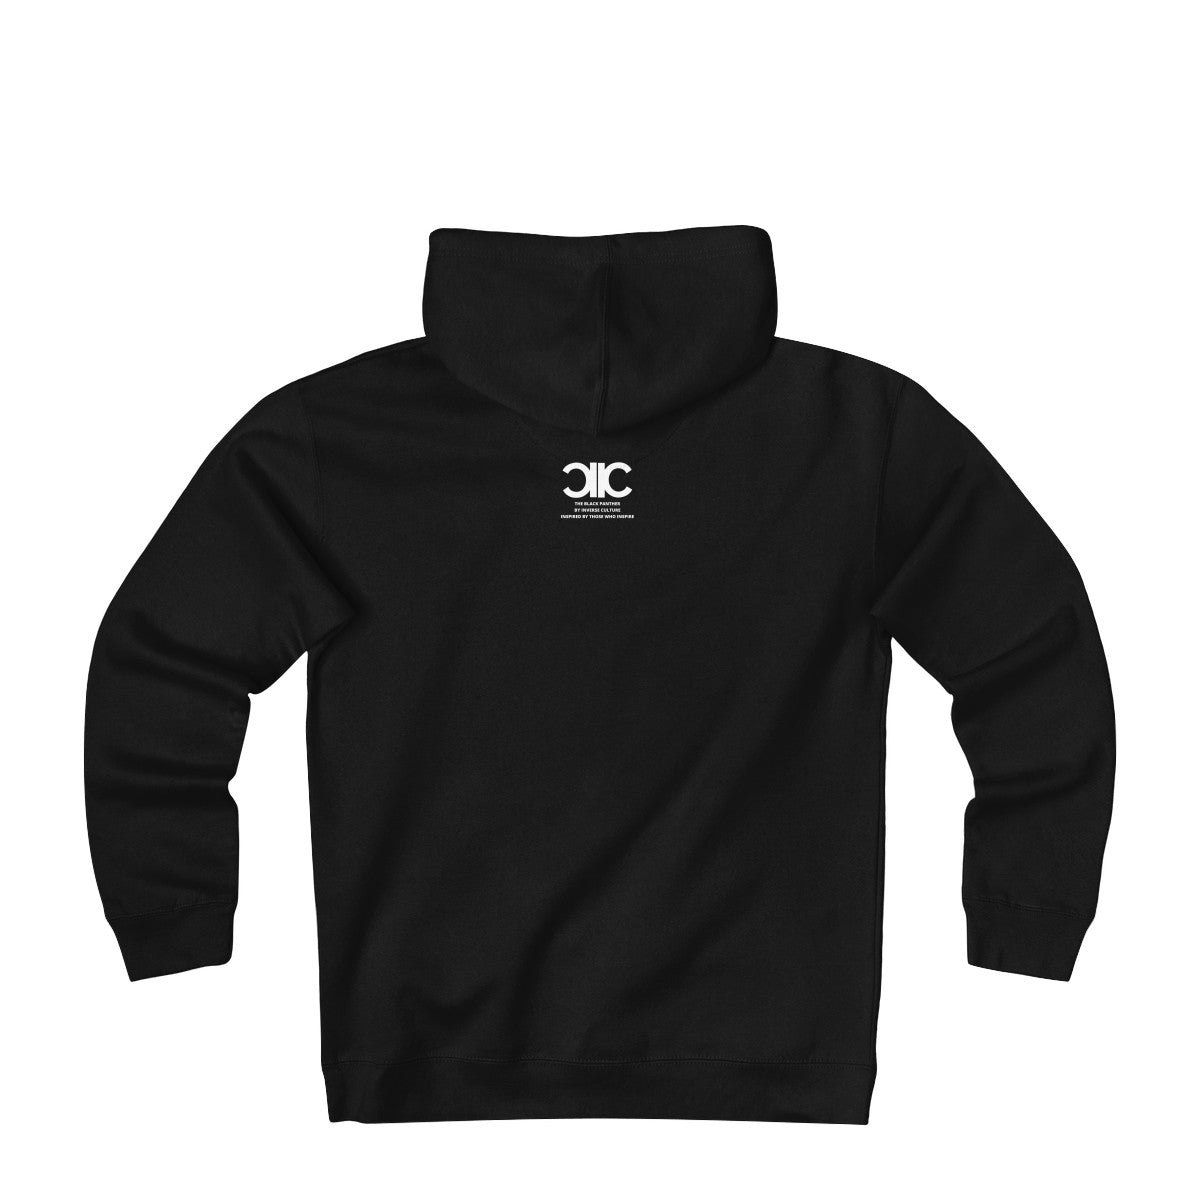 The Black Panther Heavy Hoodie